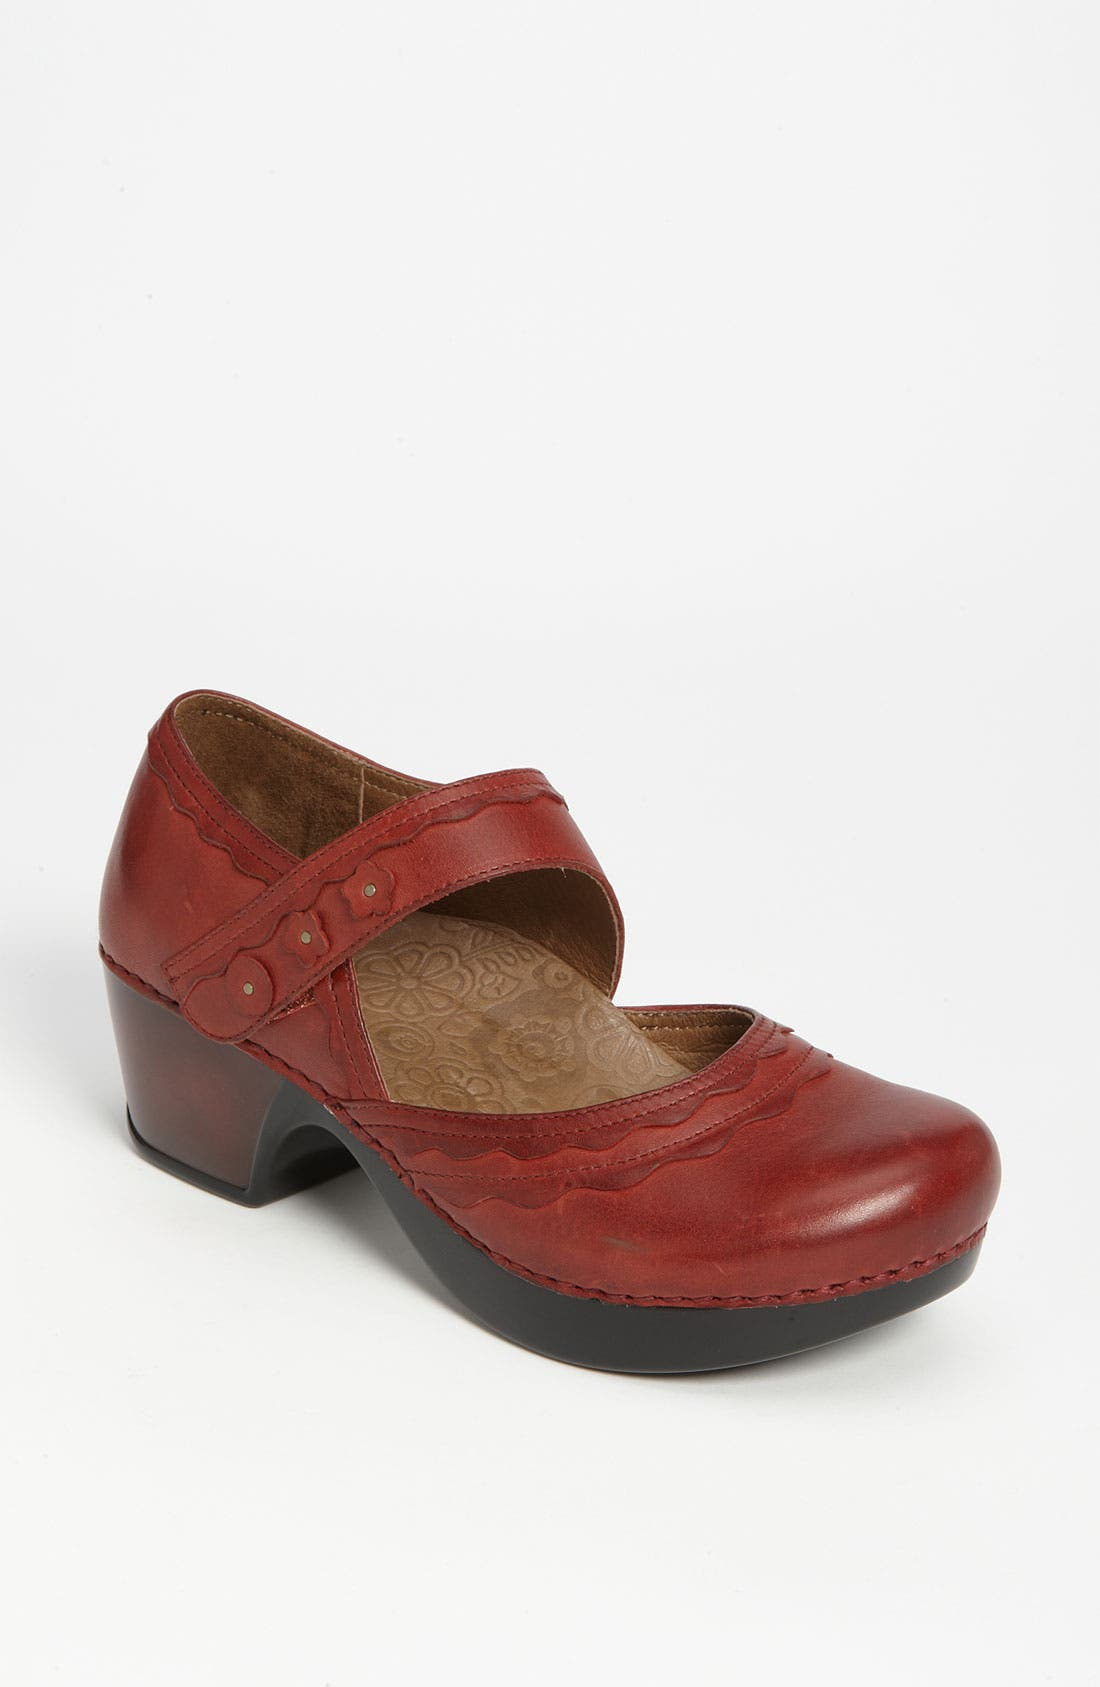 Alternate Image 1 Selected - Dansko 'Harlow' Clog